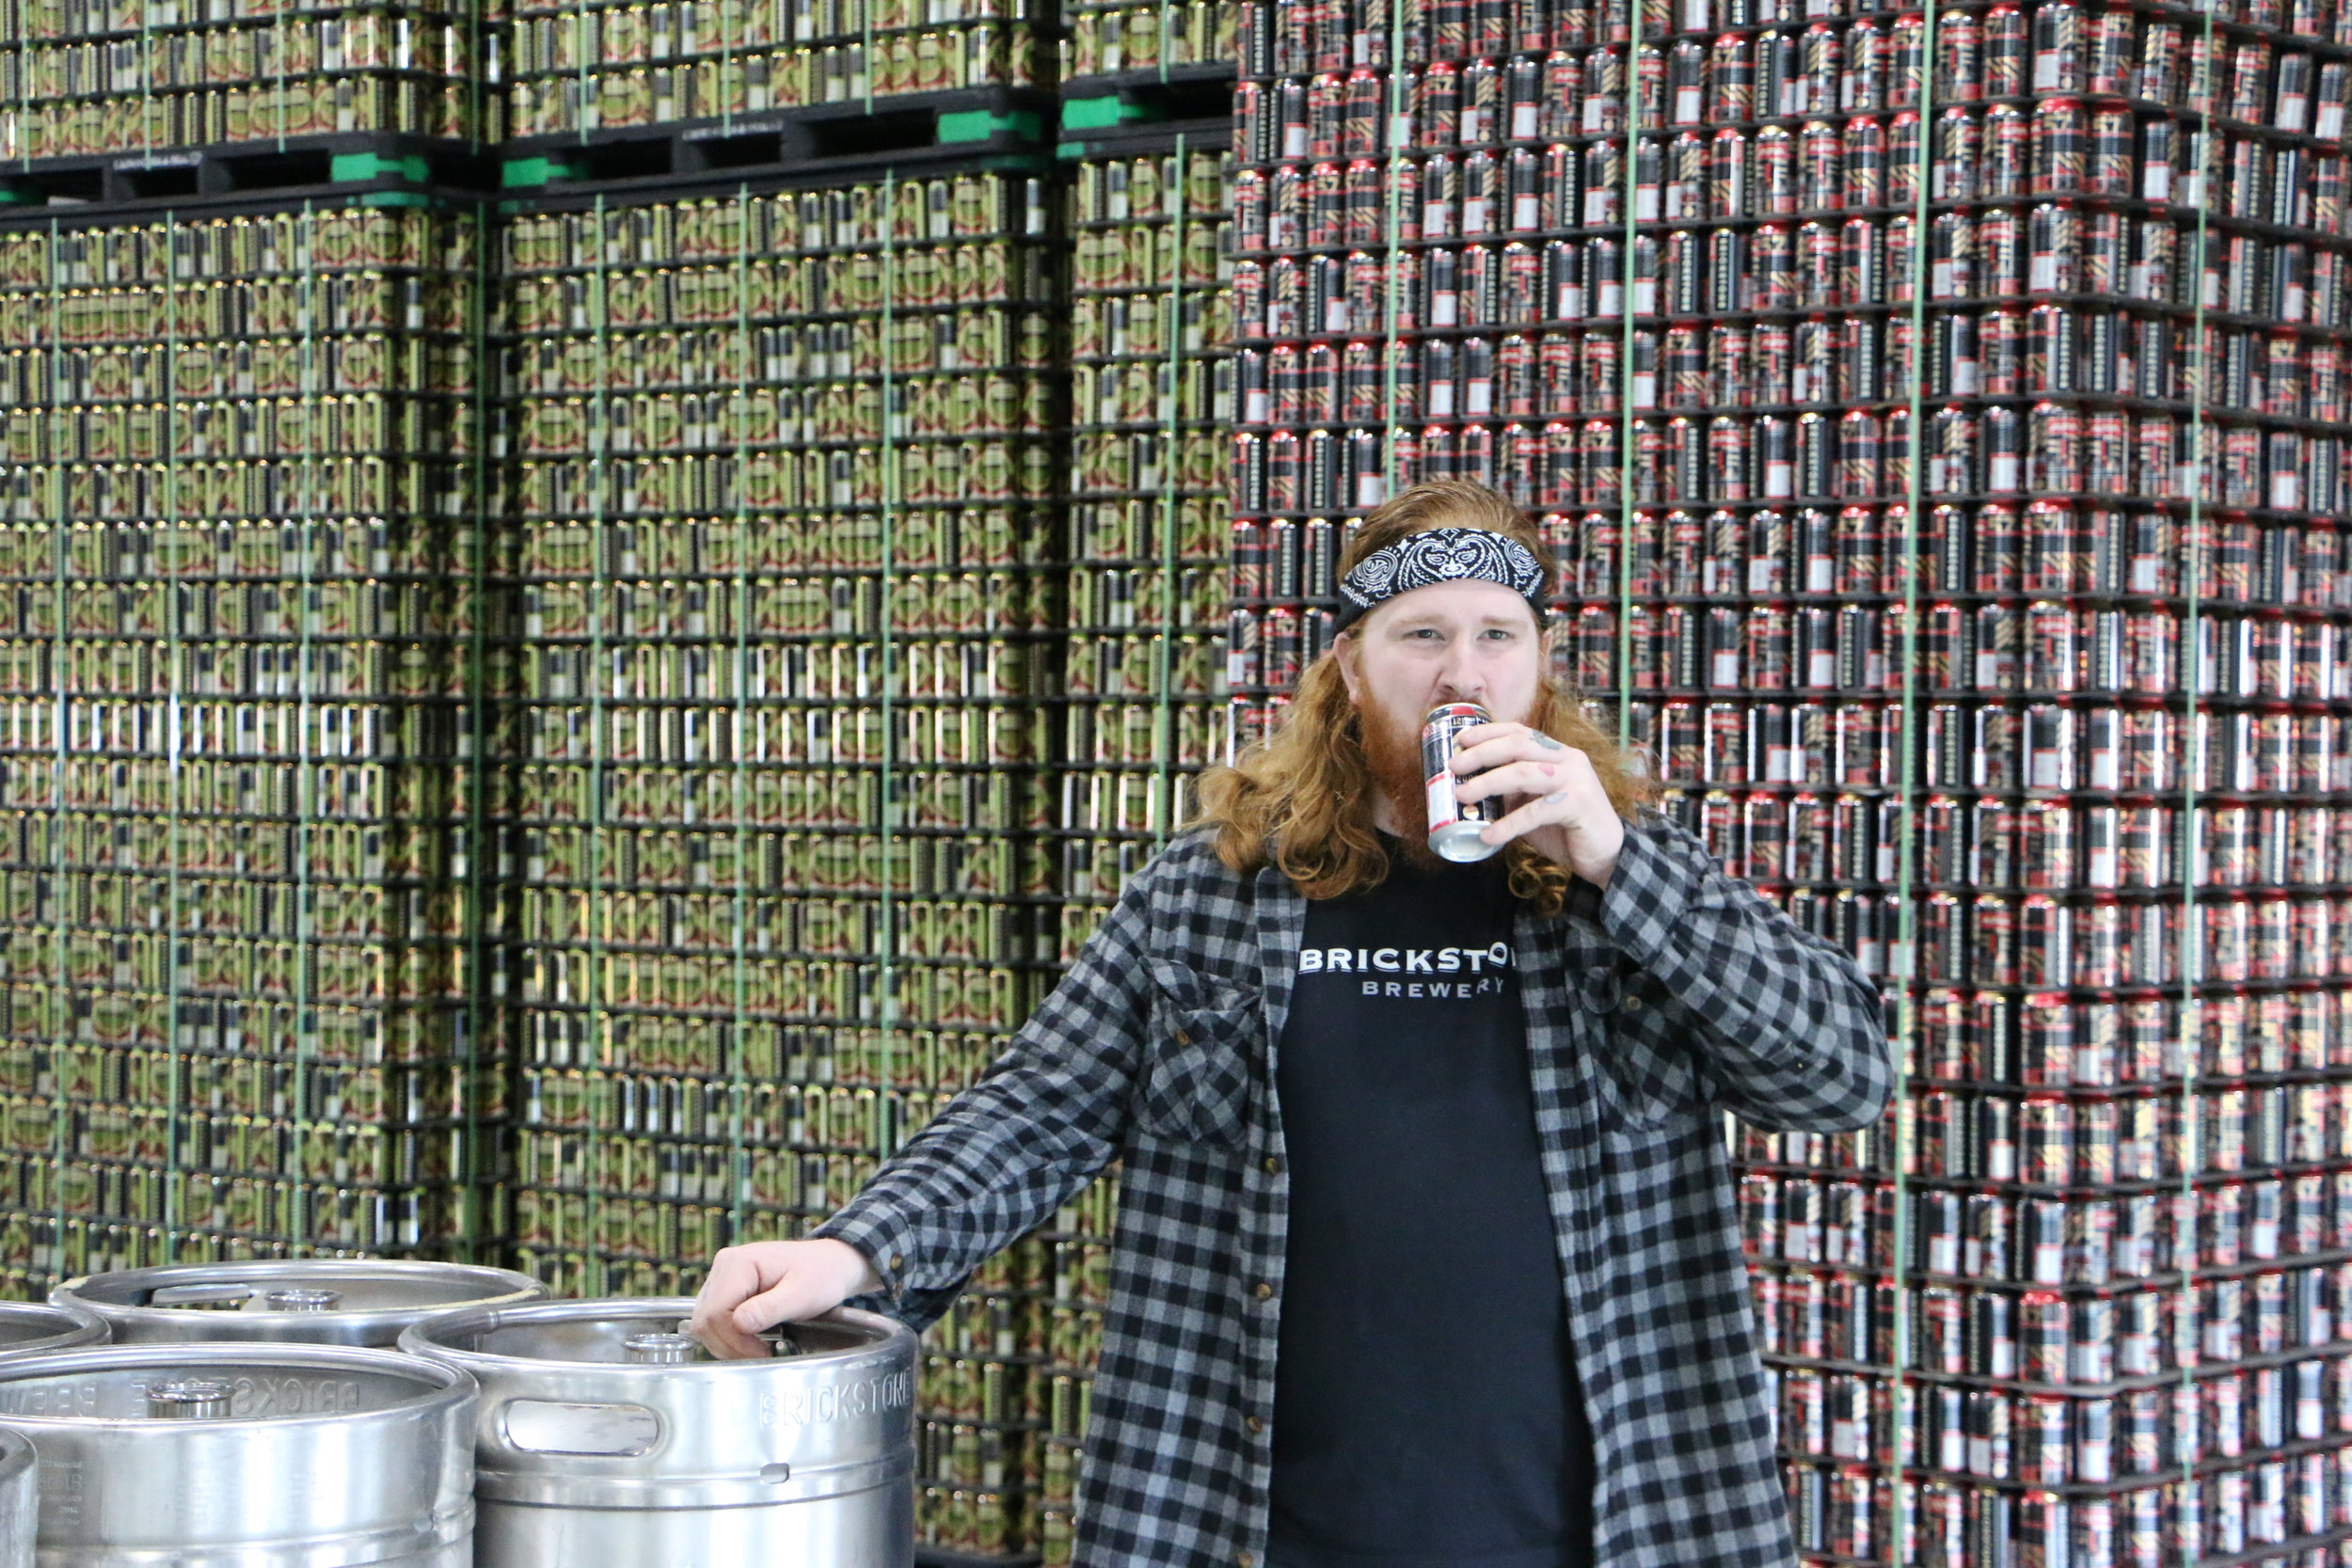 An Interview with Brickstone Brewery's Jack of All Trades